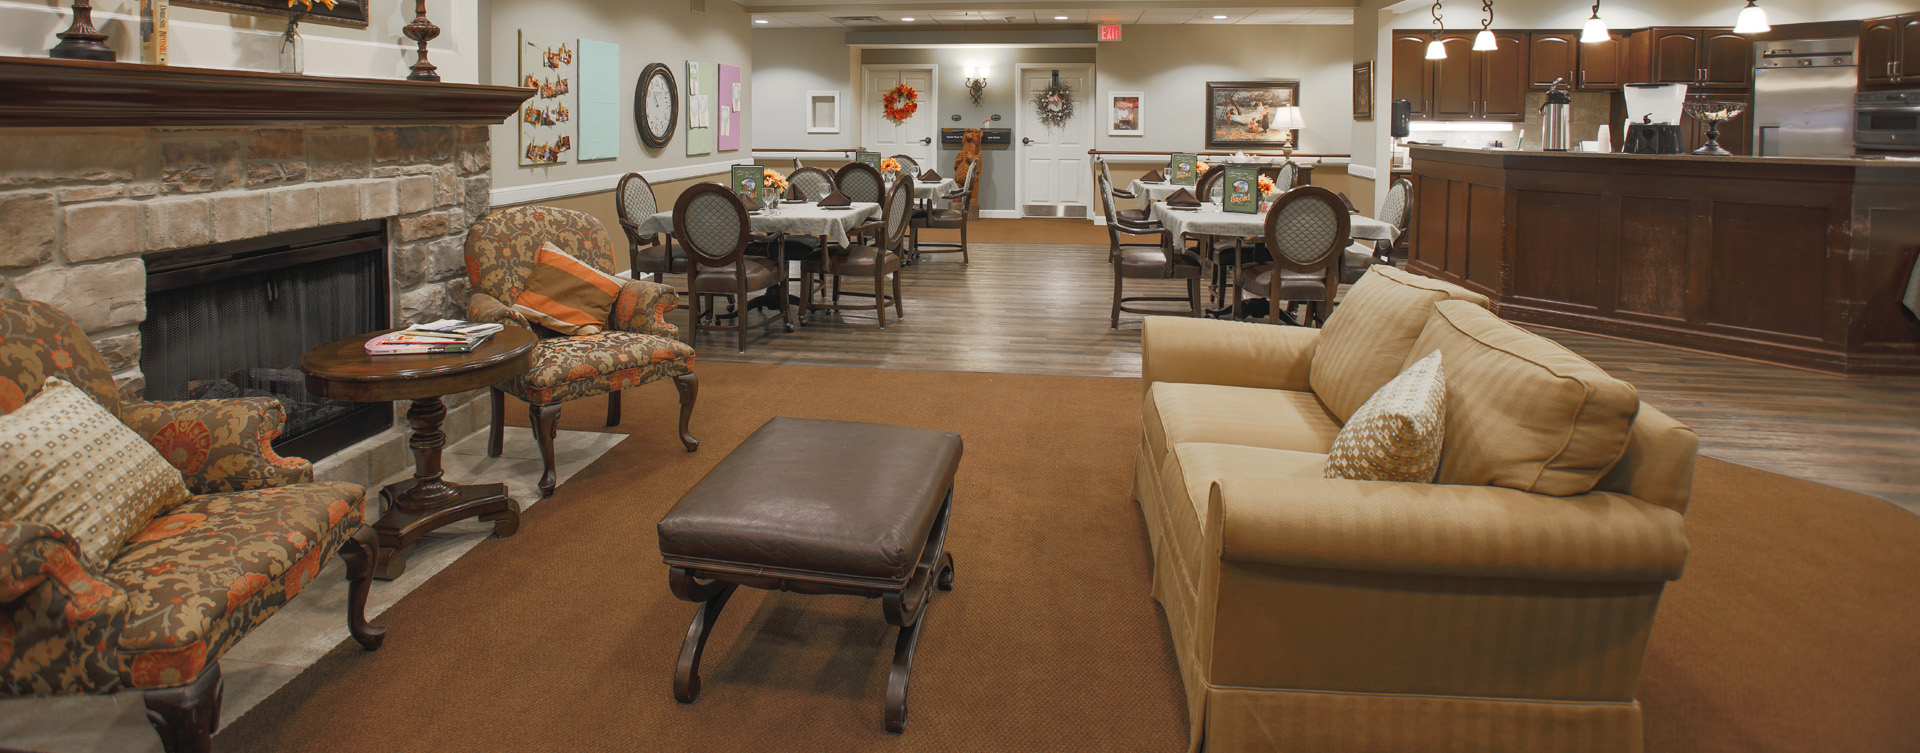 Chairs and sofas sit higher and are easier to get in and out of in the Mary B's living room at Bickford of Carmel